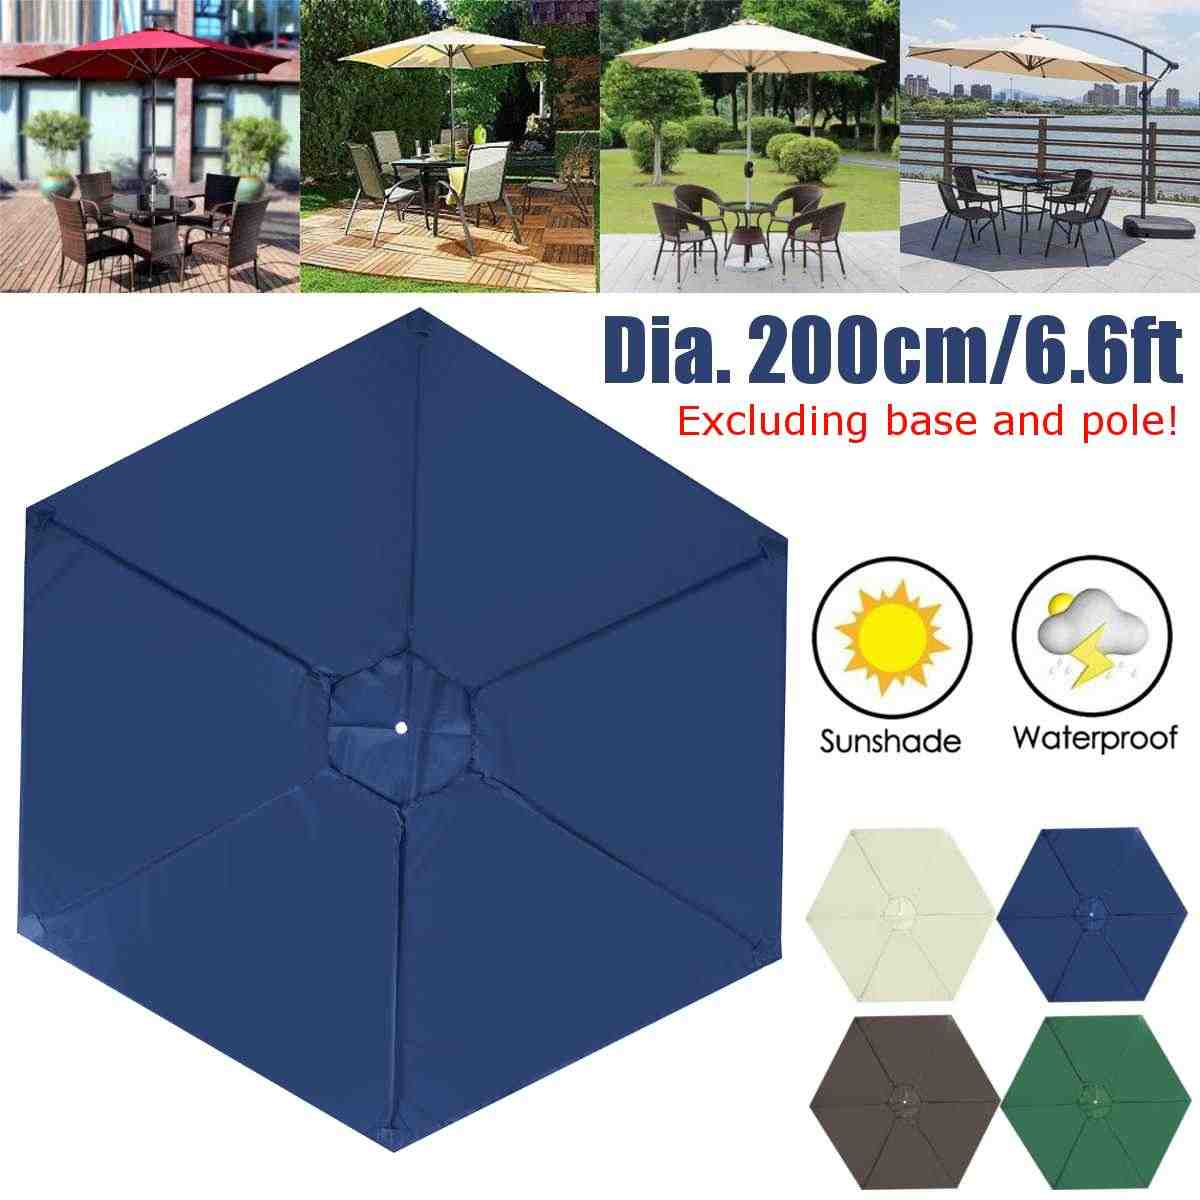 New Outdoor Garden Parasol Umbrella Cover Waterproof Dustproof Cantilever Outdoor Garden Patio Umbrella Shield 2m Oxford Cloth Rain Covers Aliexpress